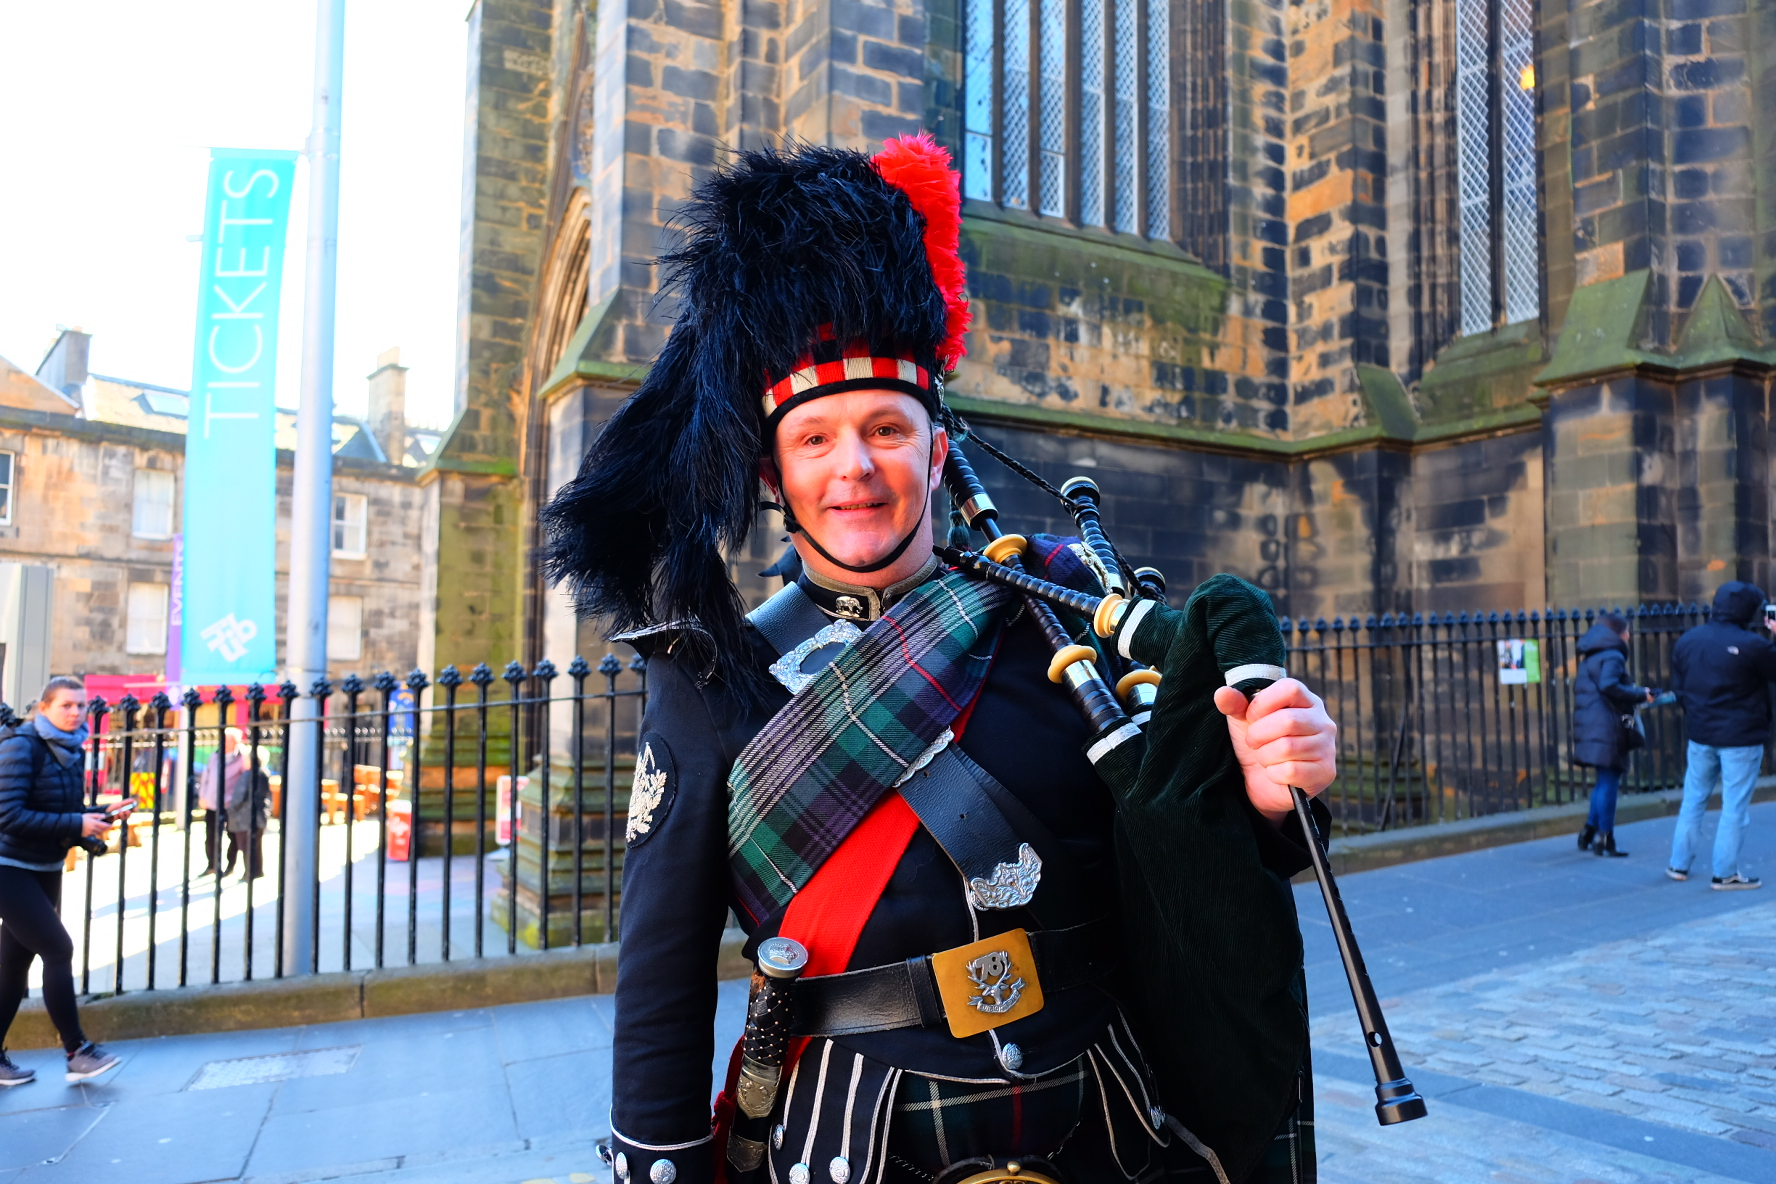 50-year-old building surveyor and part-time piper Angus Mackenzie.